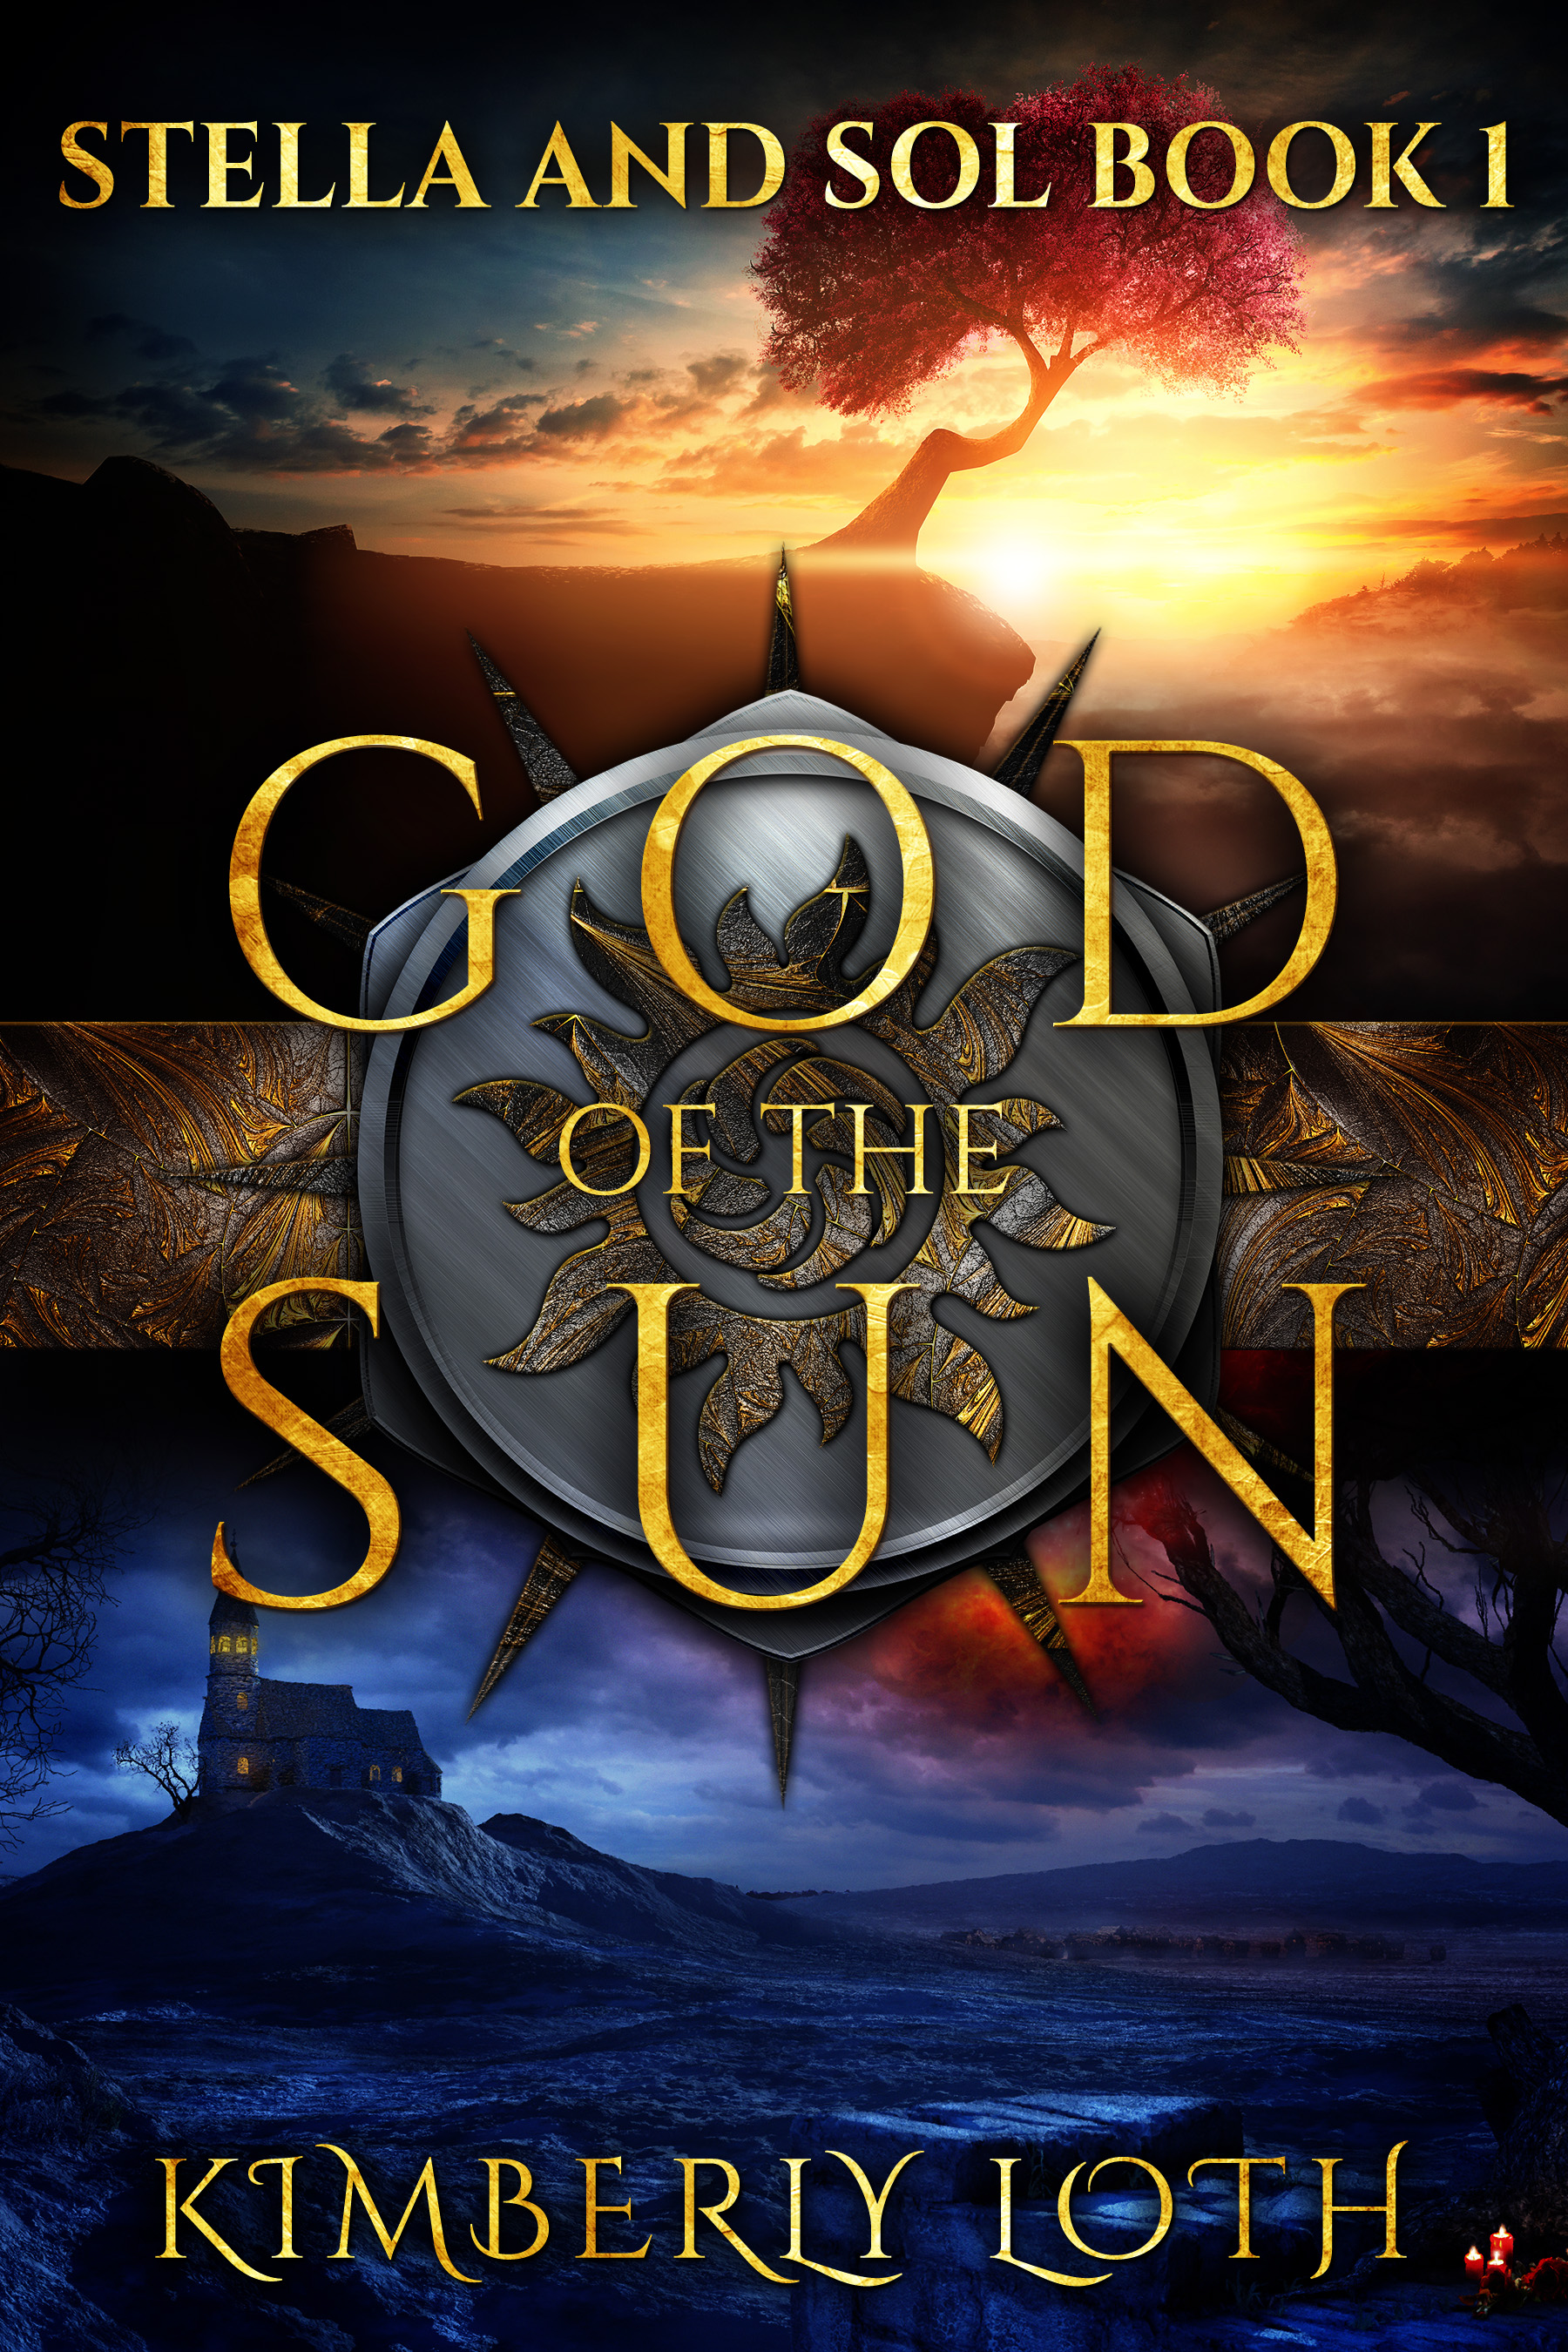 2016-761-ebook-kimberly-loth-god-of-the-sunb01